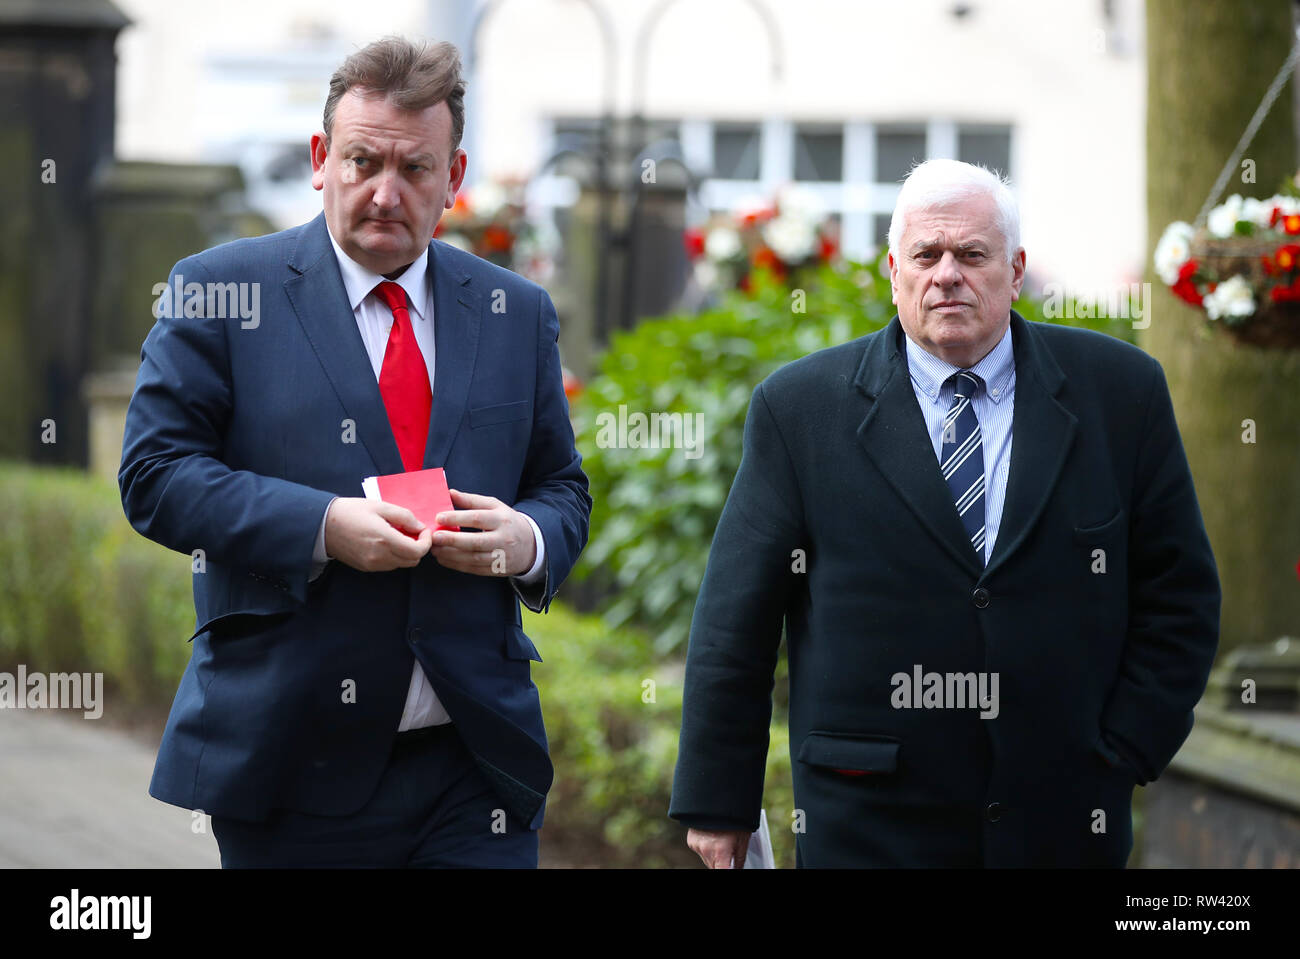 Nicholas Randall (left) and Peter Ridsdale arriving at the funeral service for Gordon Banks at Stoke Minster. - Stock Image